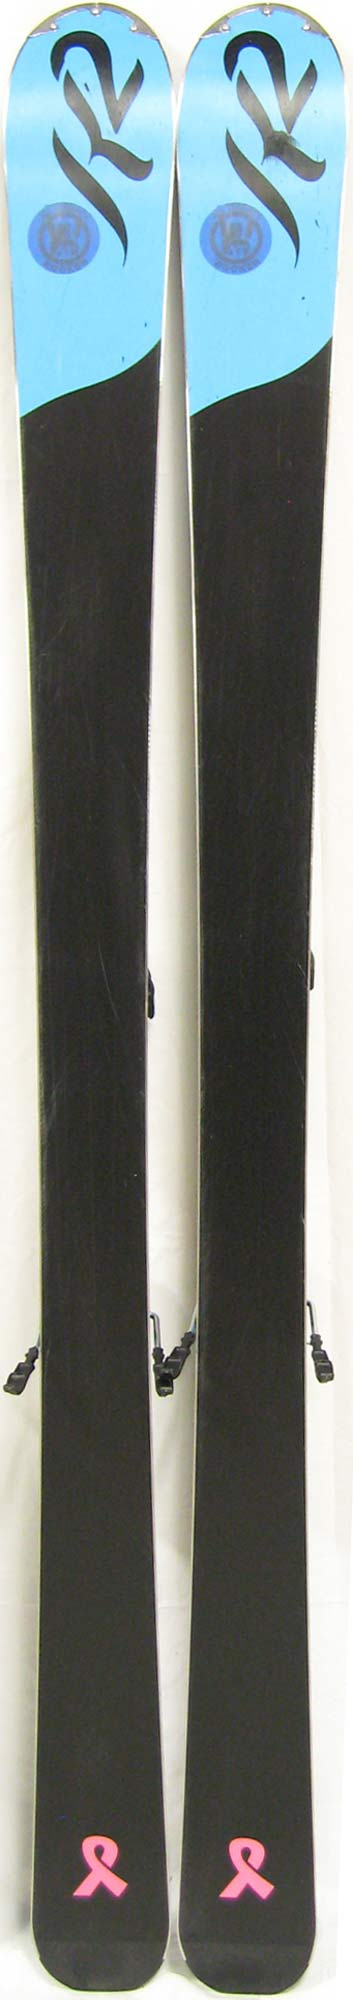 Bases of 2012 K2 SuperStitious Skis For Sale